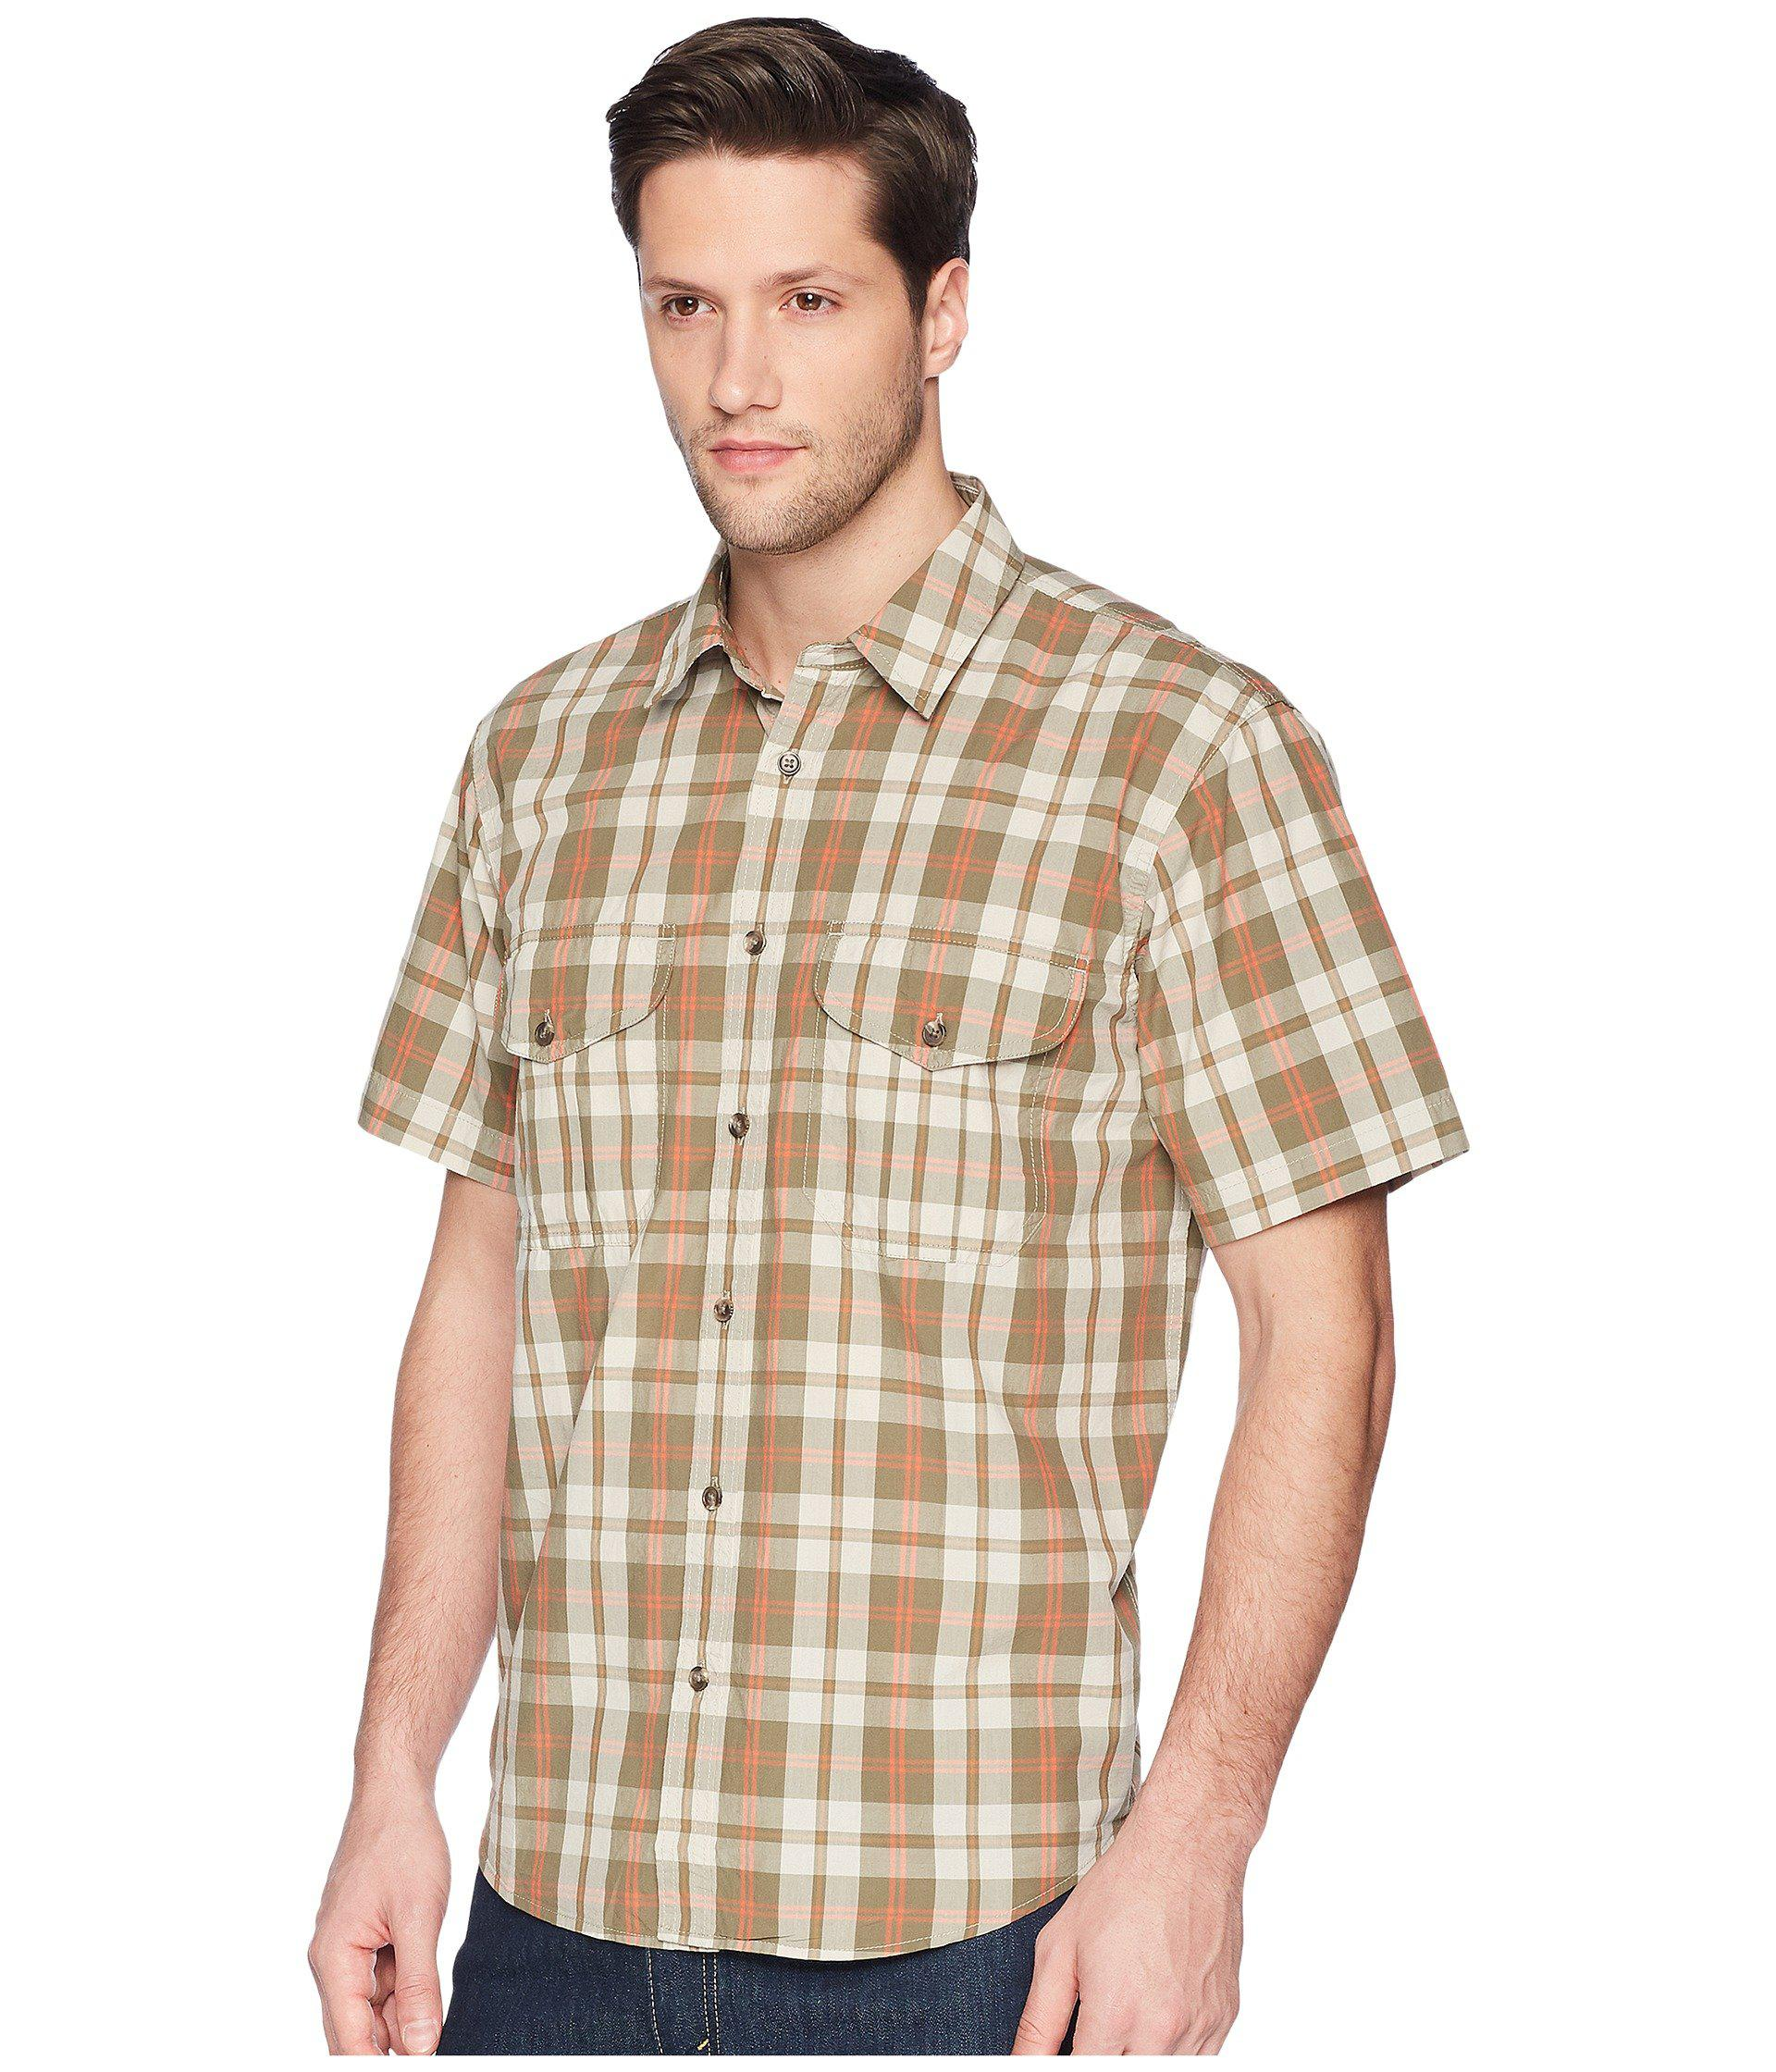 a930b2fae20c3 Lyst - Filson Short Sleeve Feather Cloth Shirt (khaki olive blue Plaid) Men s  Short Sleeve Button Up in Natural for Men